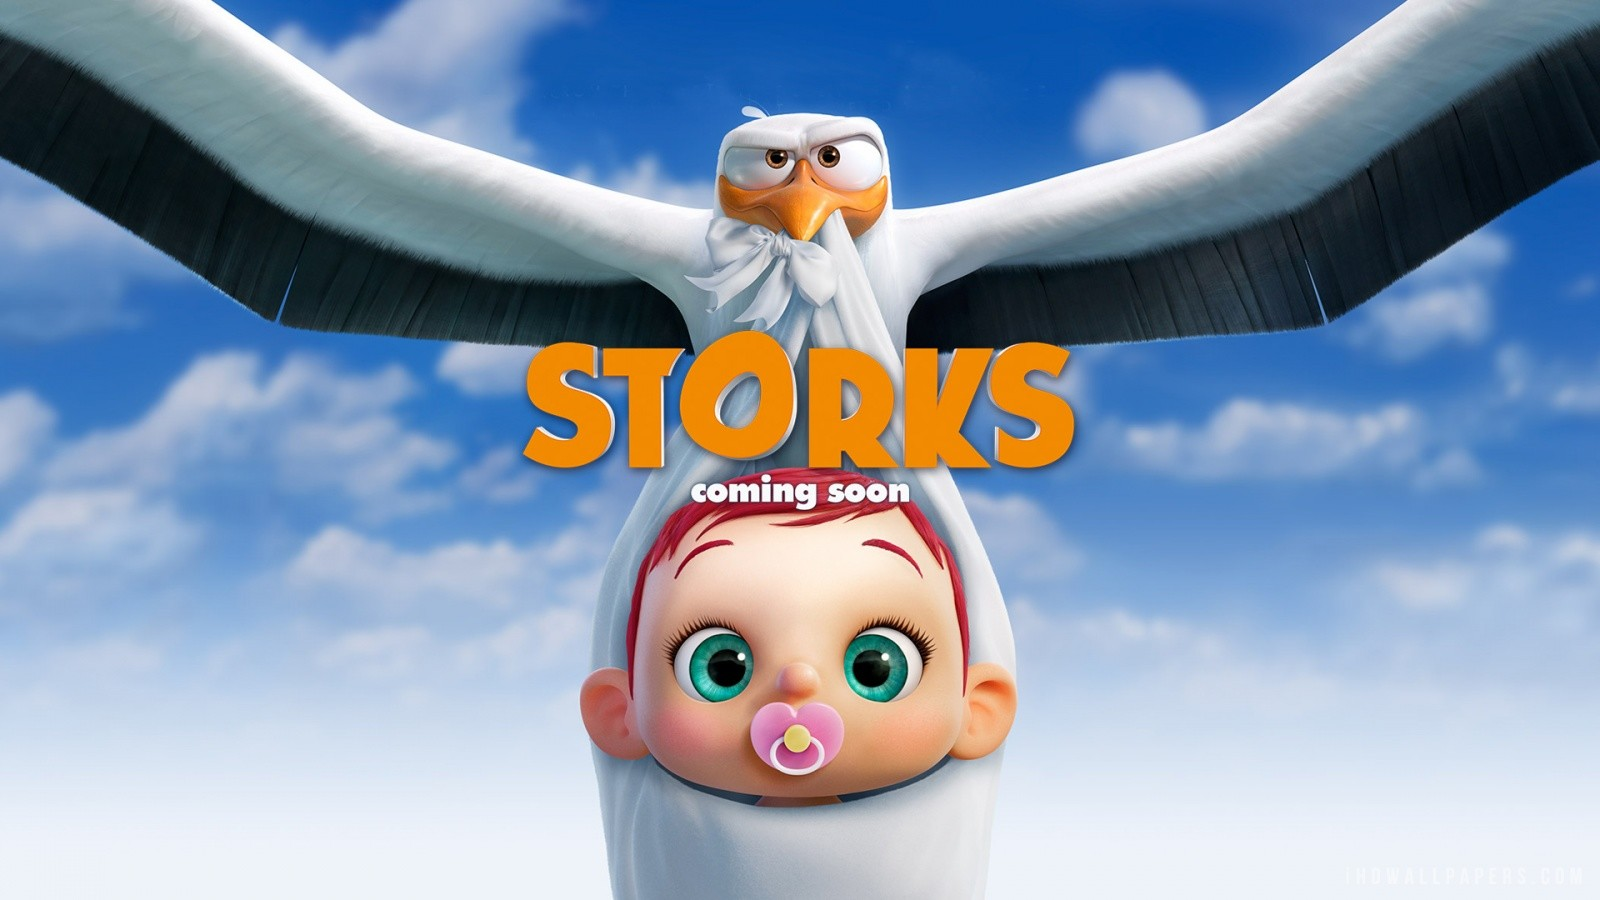 Nate hallinan storks 2016 movie 1600x900